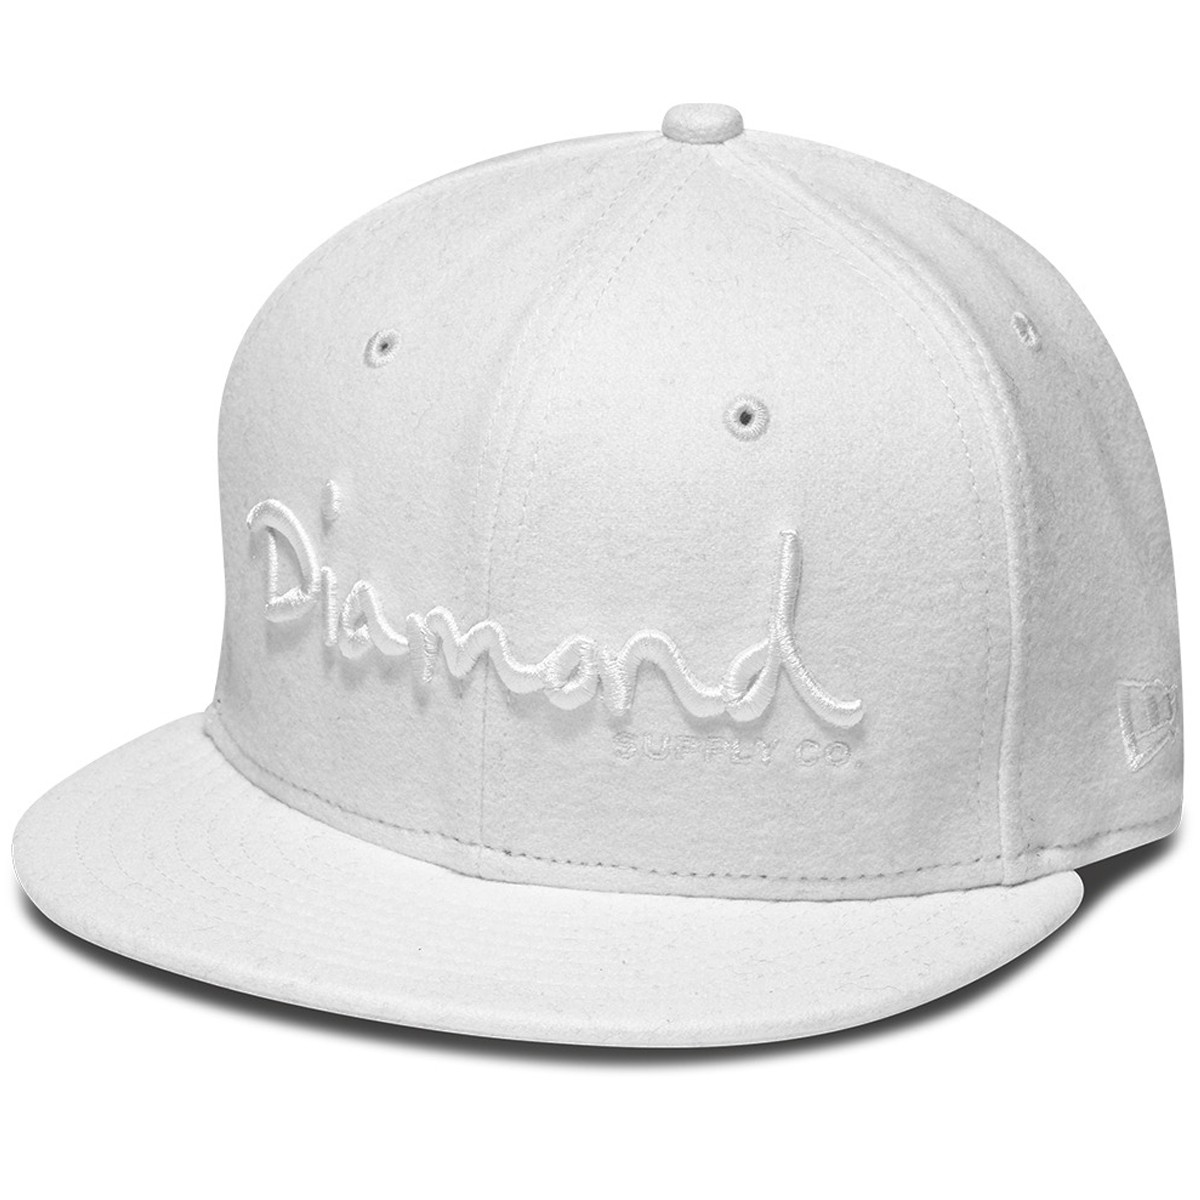 41846d0695c diamond-supply-co-og-script-fitted-hat-white 4.1508231792.jpg